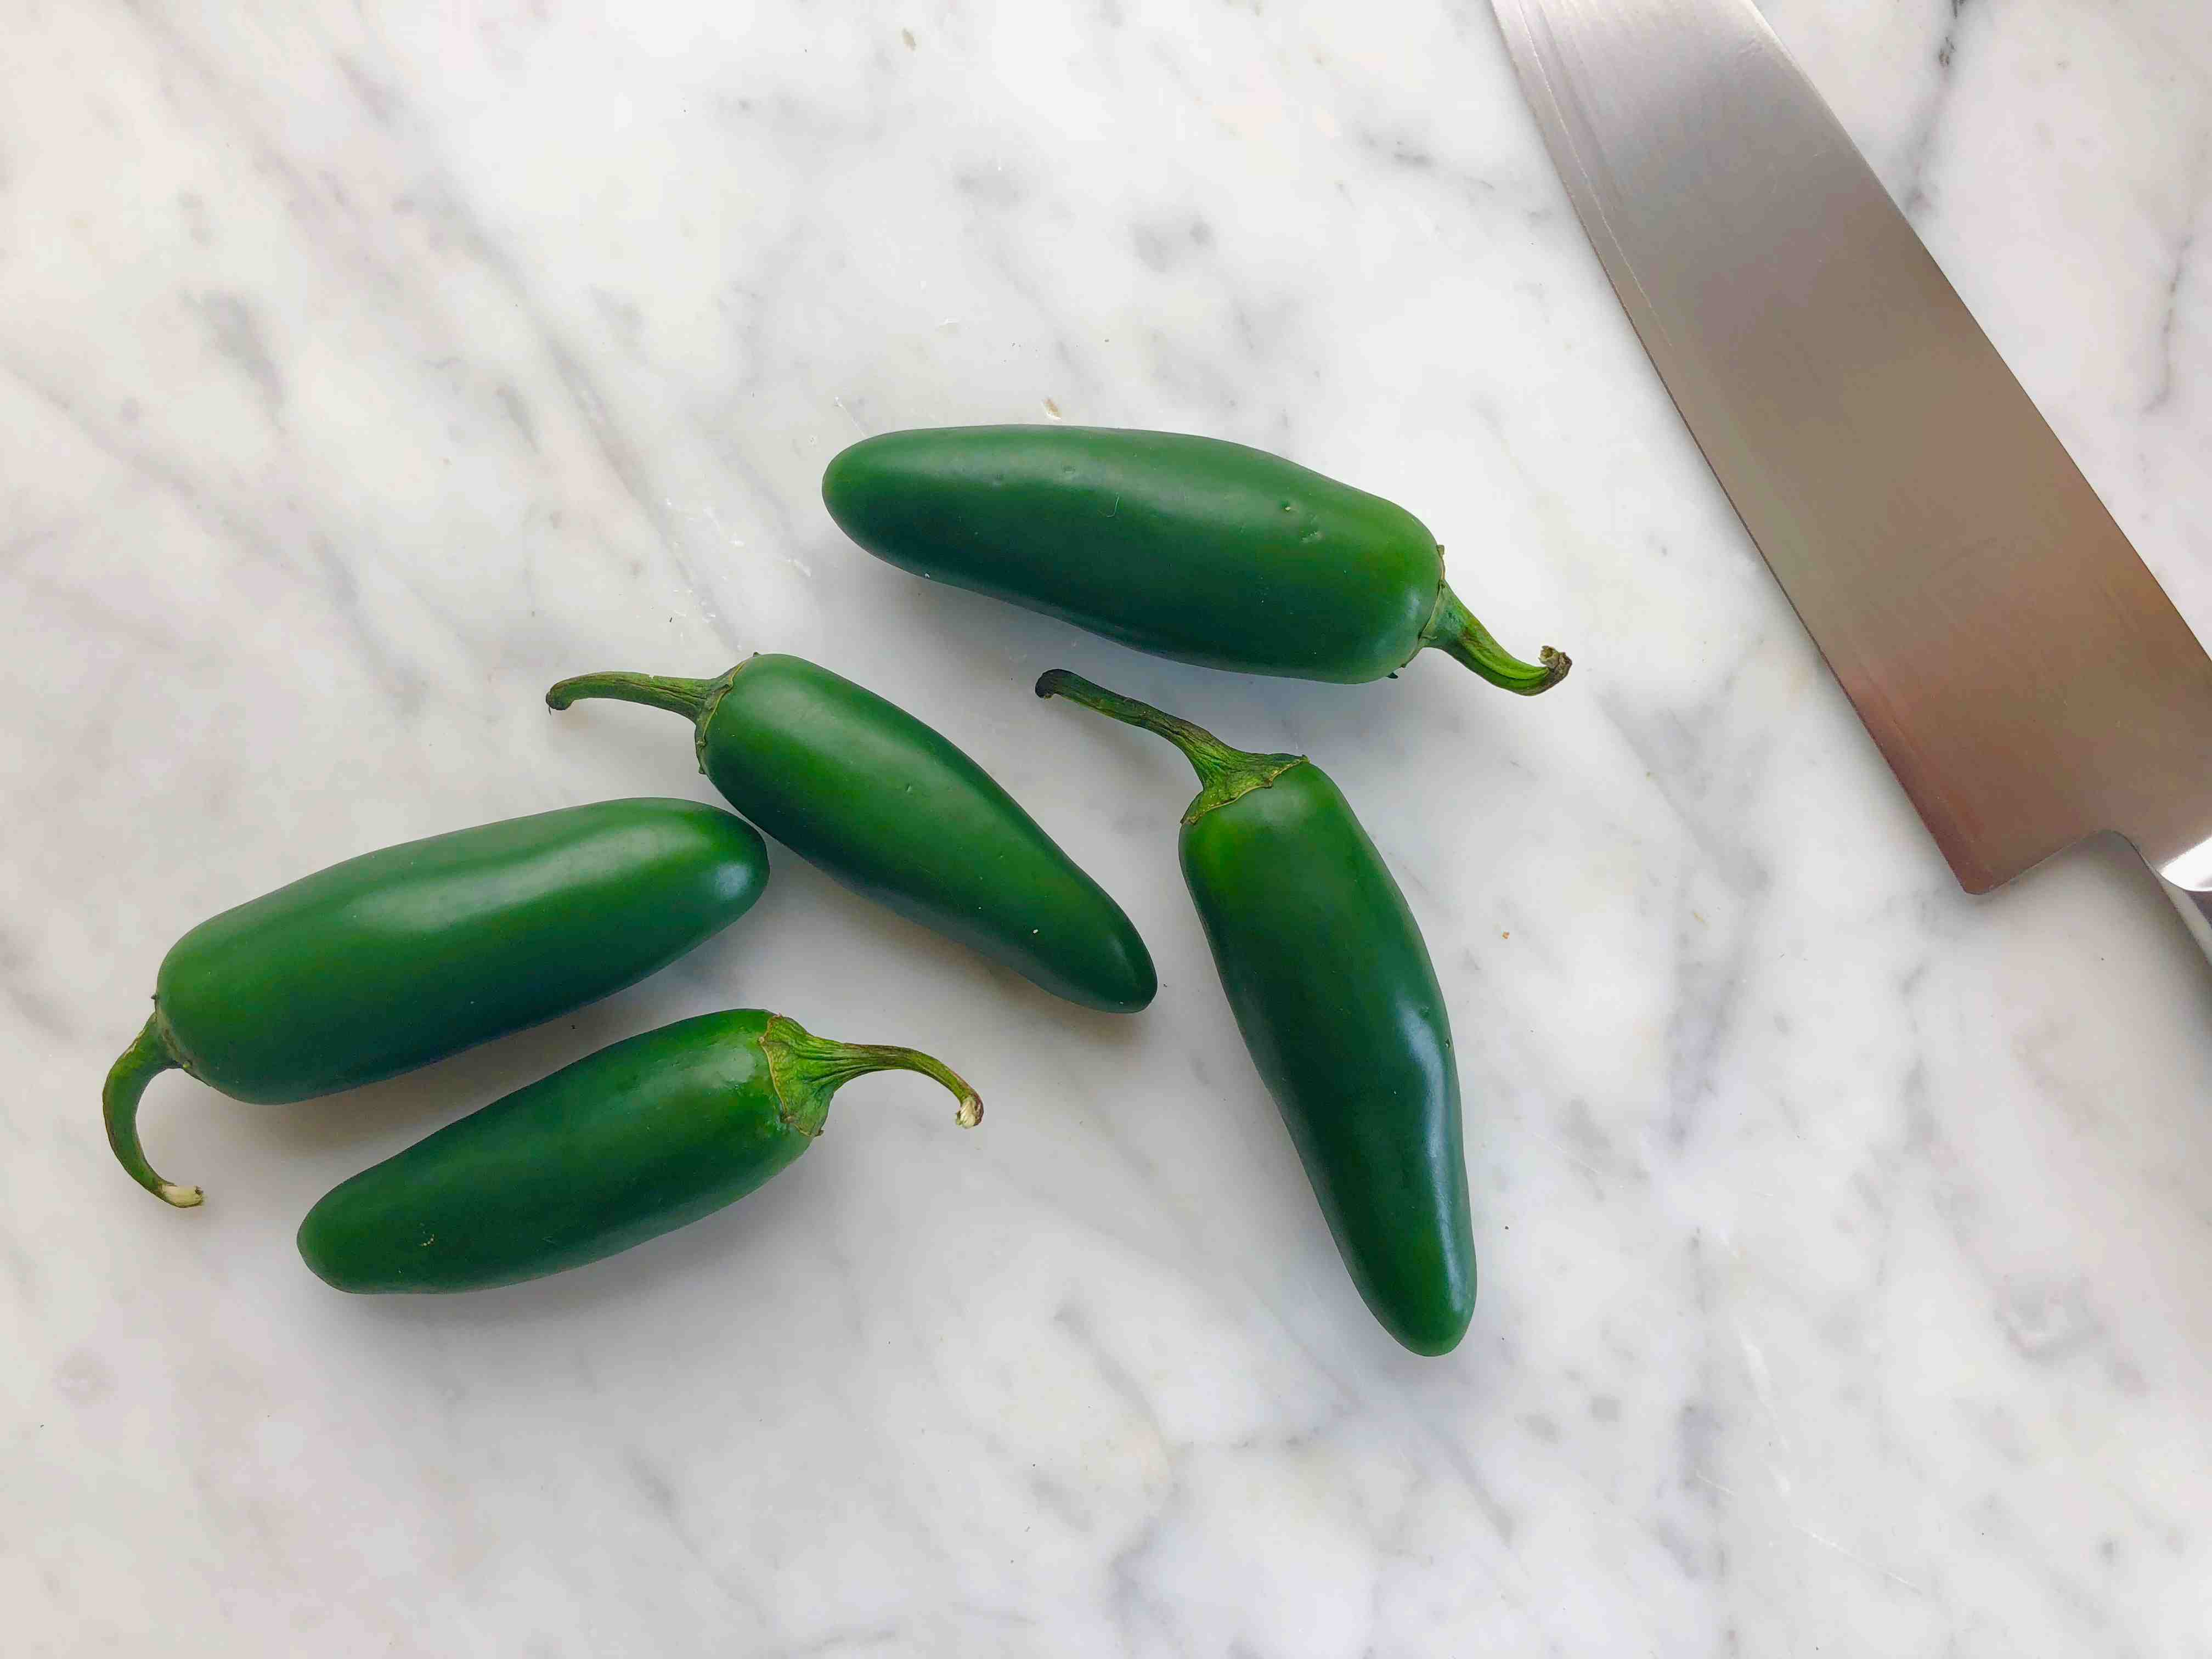 Whole Jalapeño